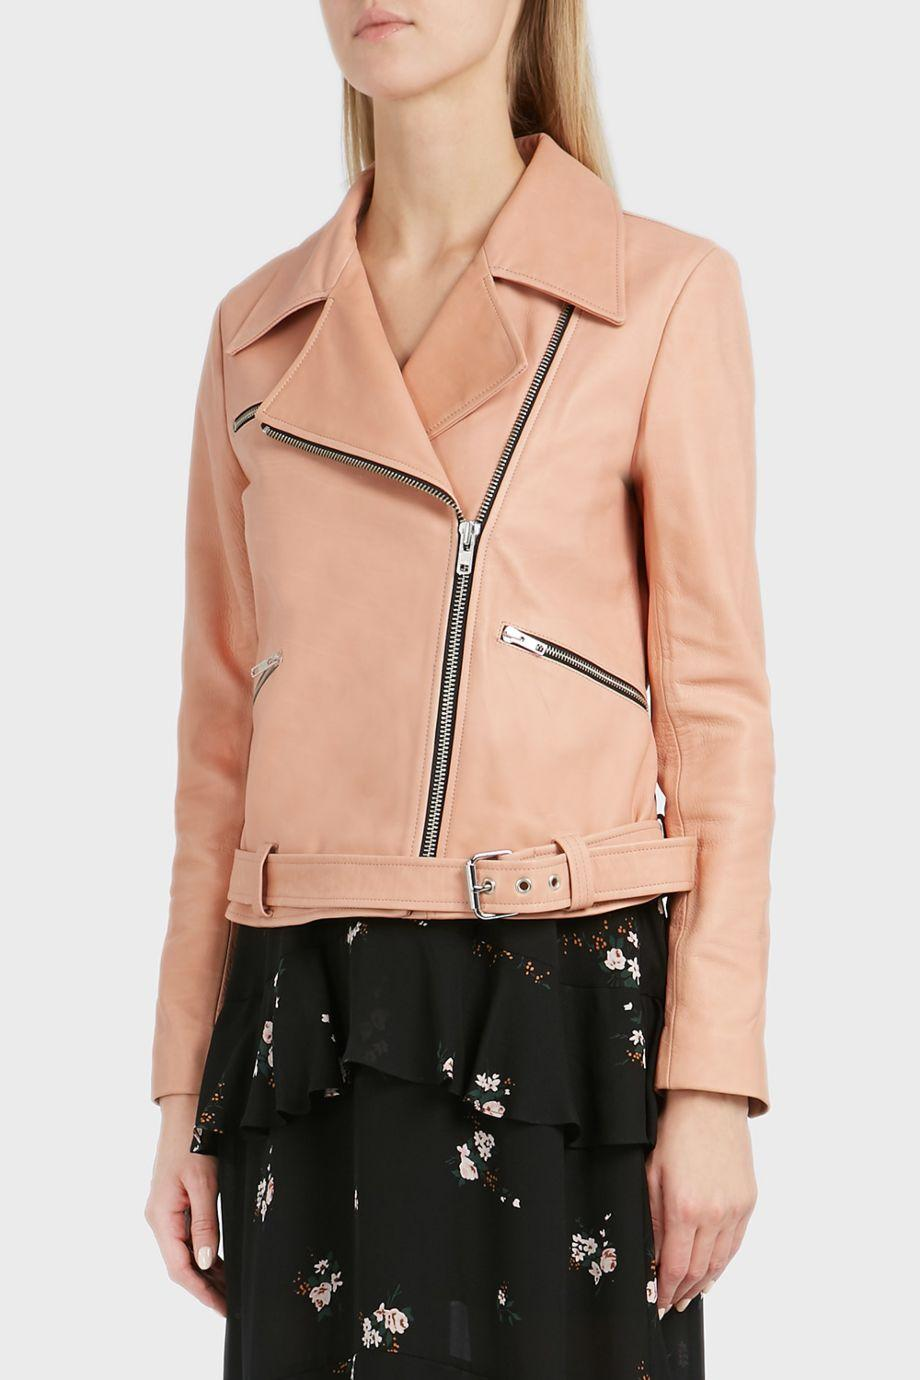 A.l.c  Duvall Zip Up Leather Jacket